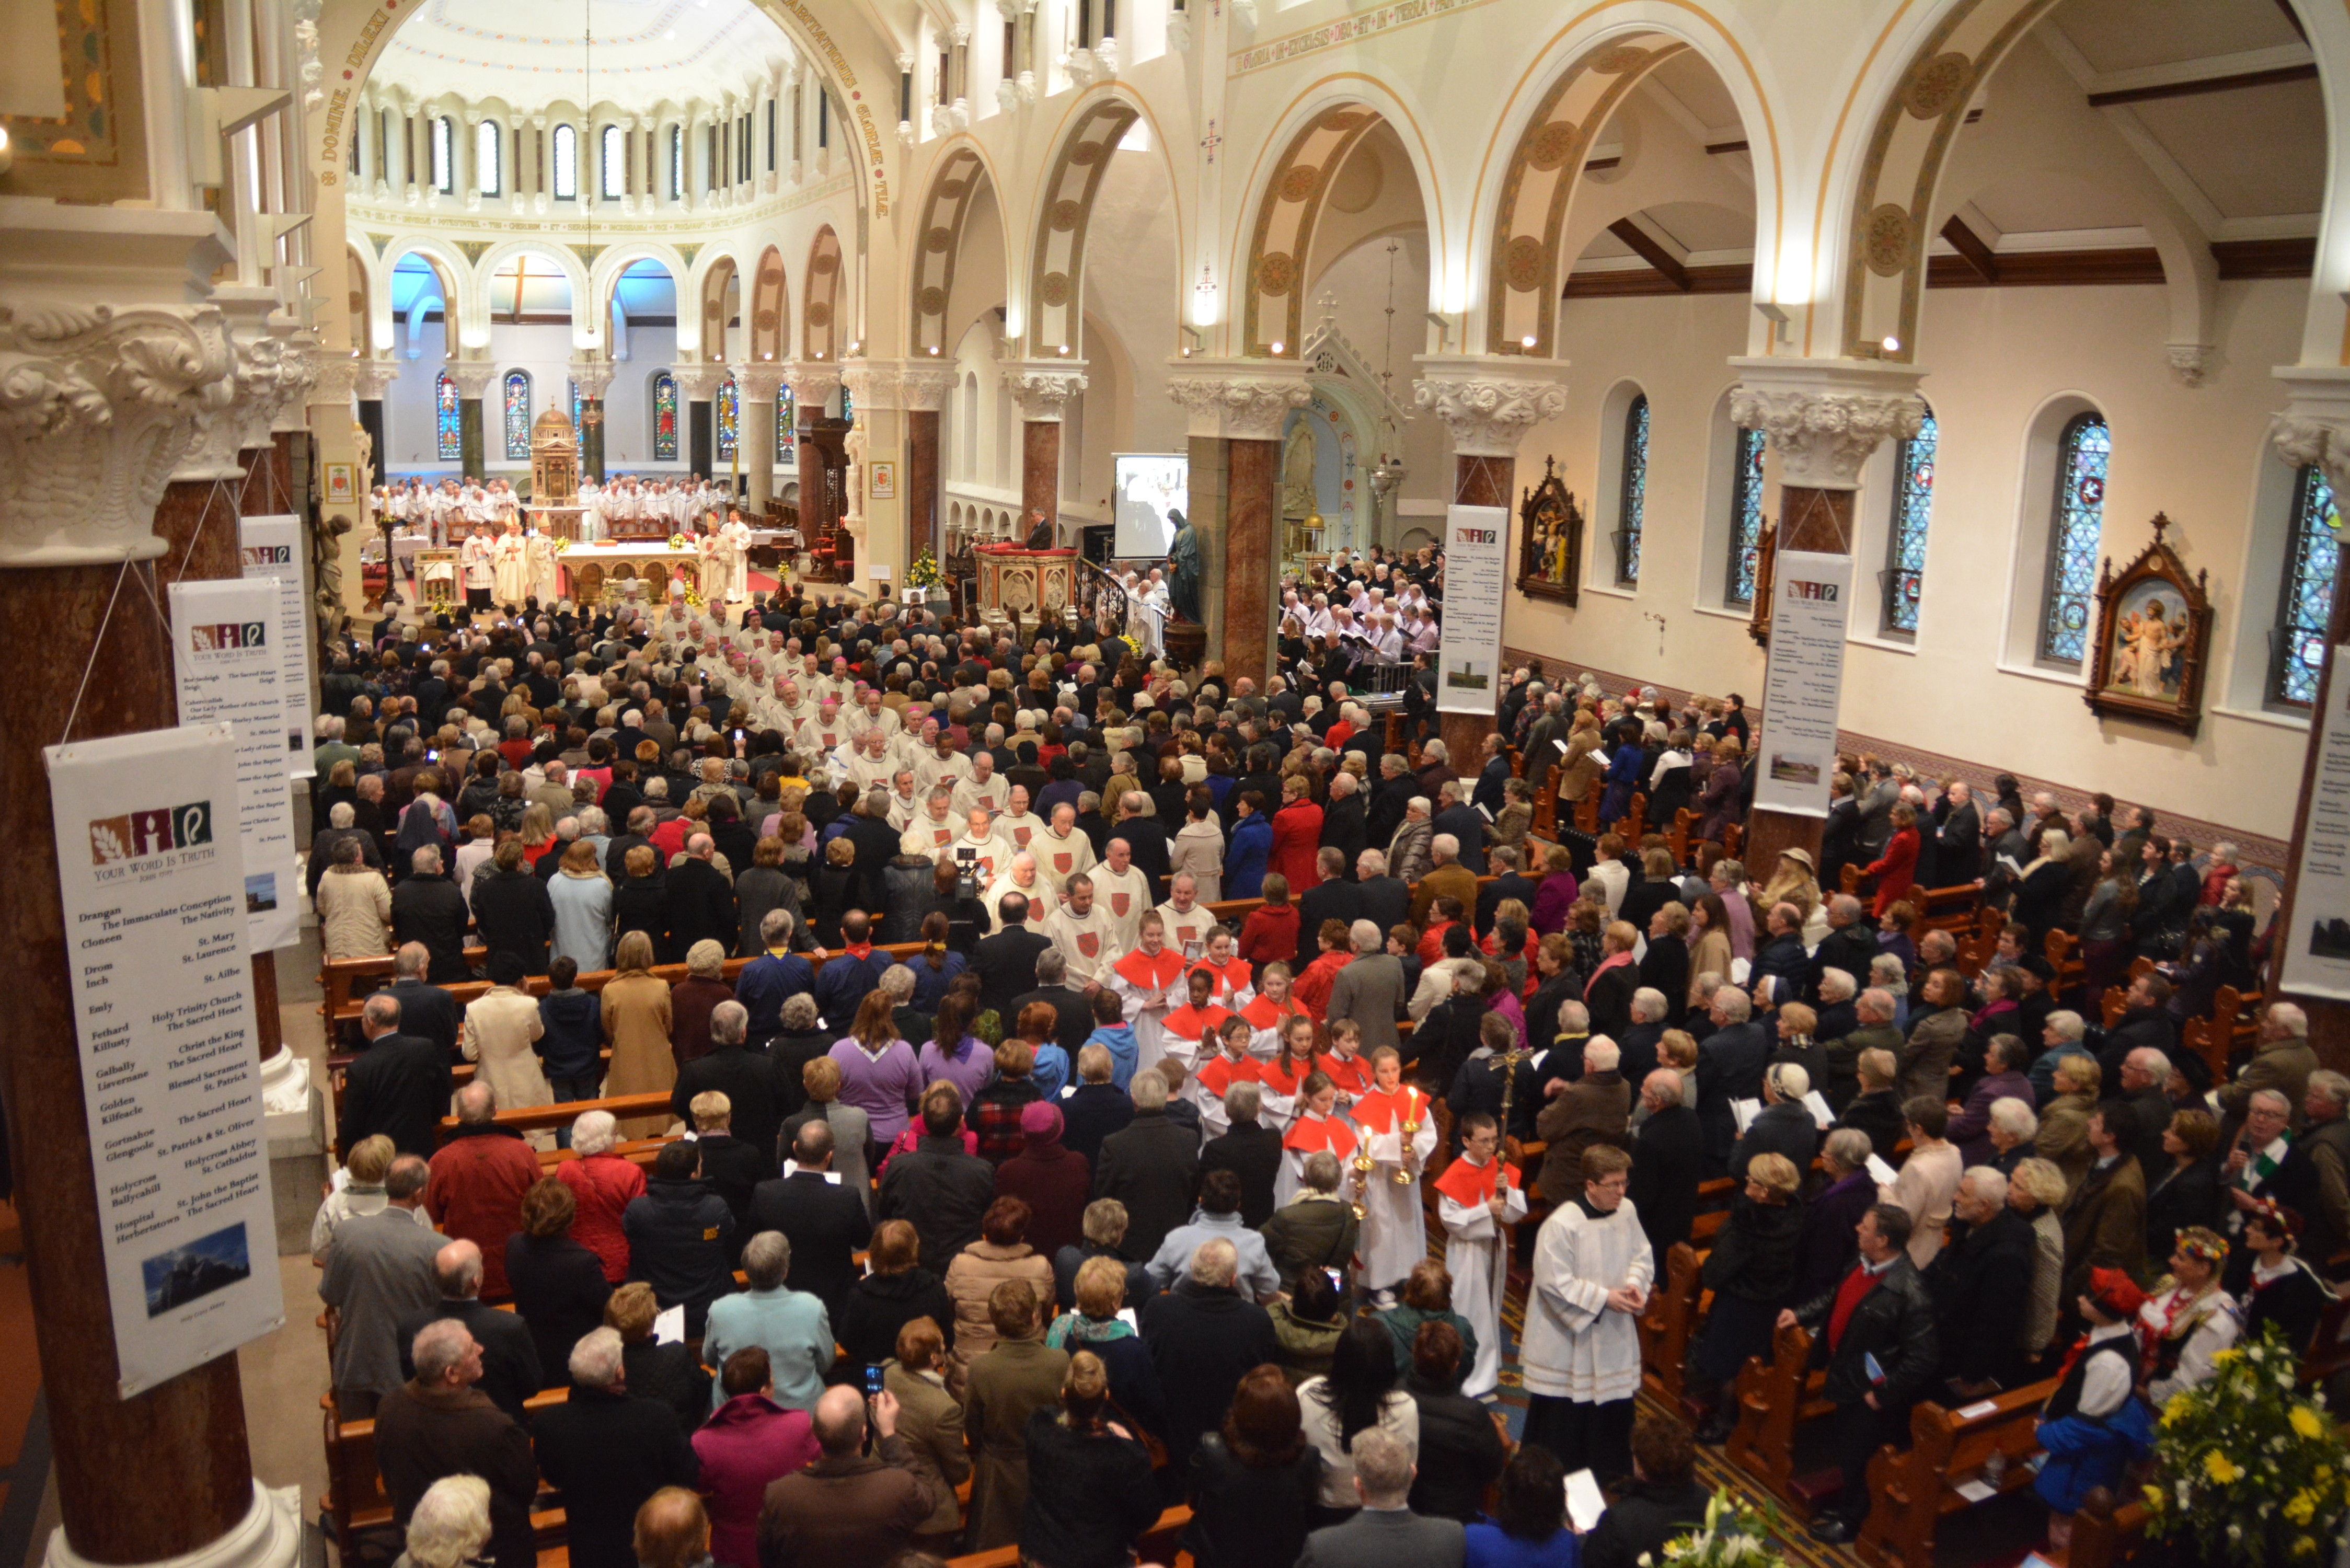 Welcome to our new Archbishop 2015